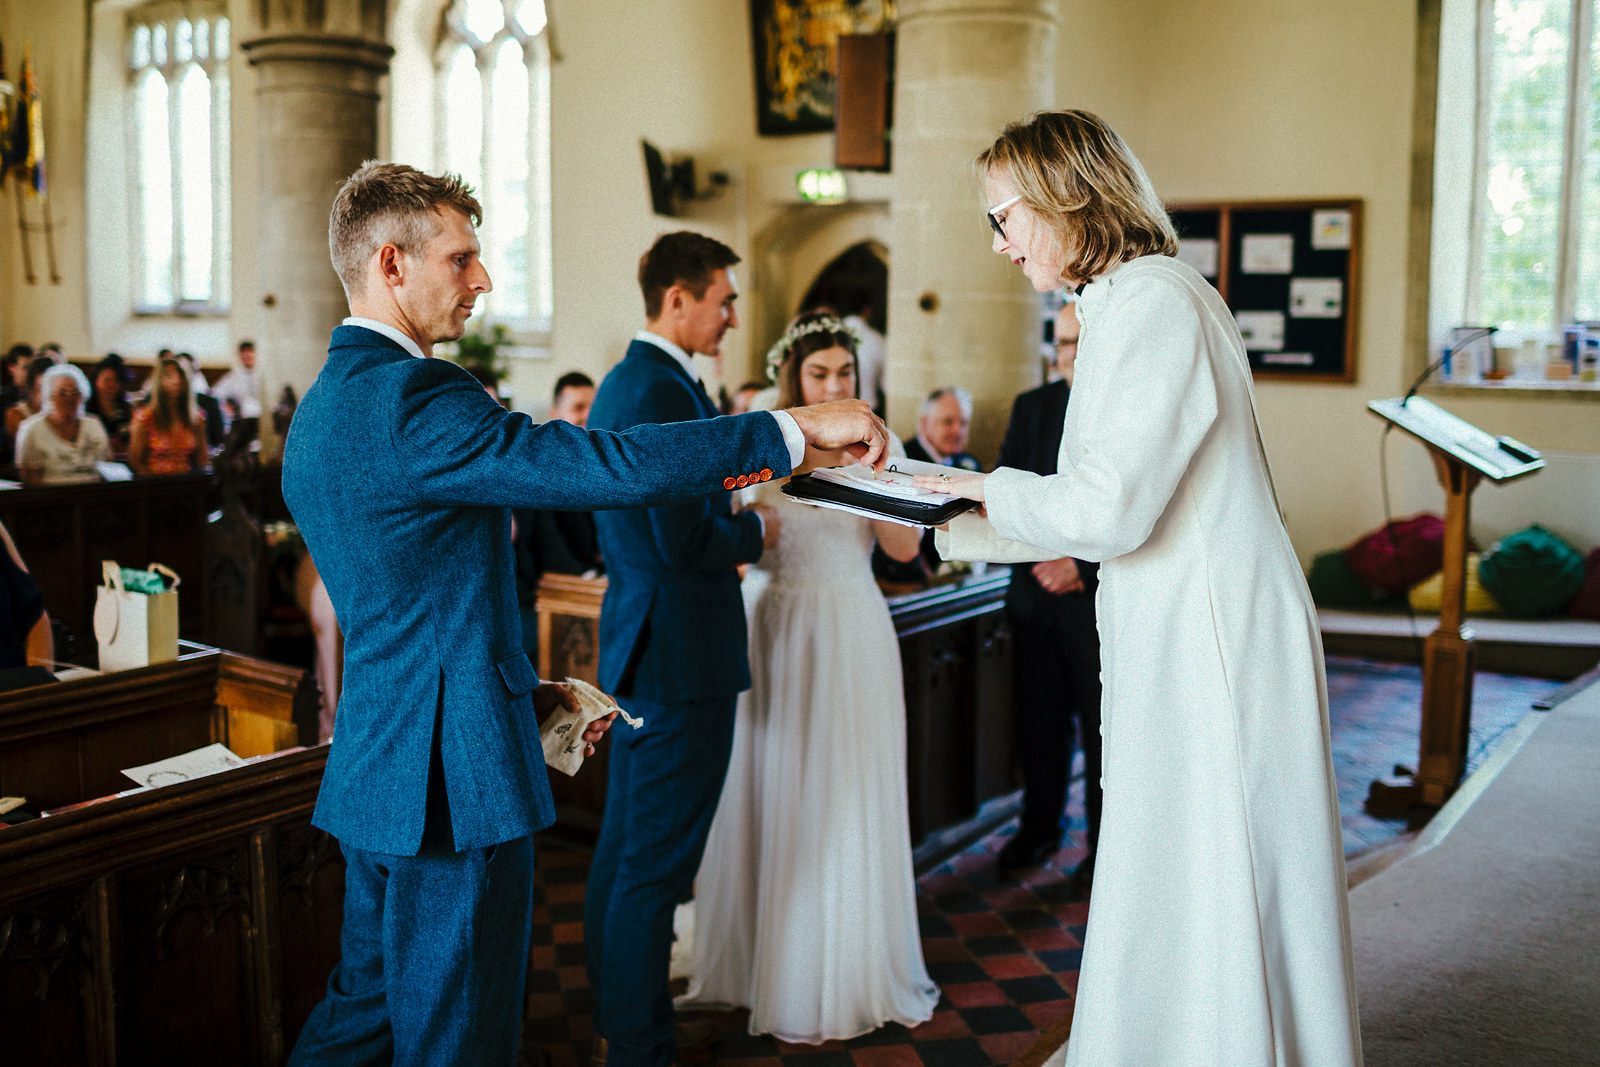 Exchange of rings at St Mary's church Haddenham